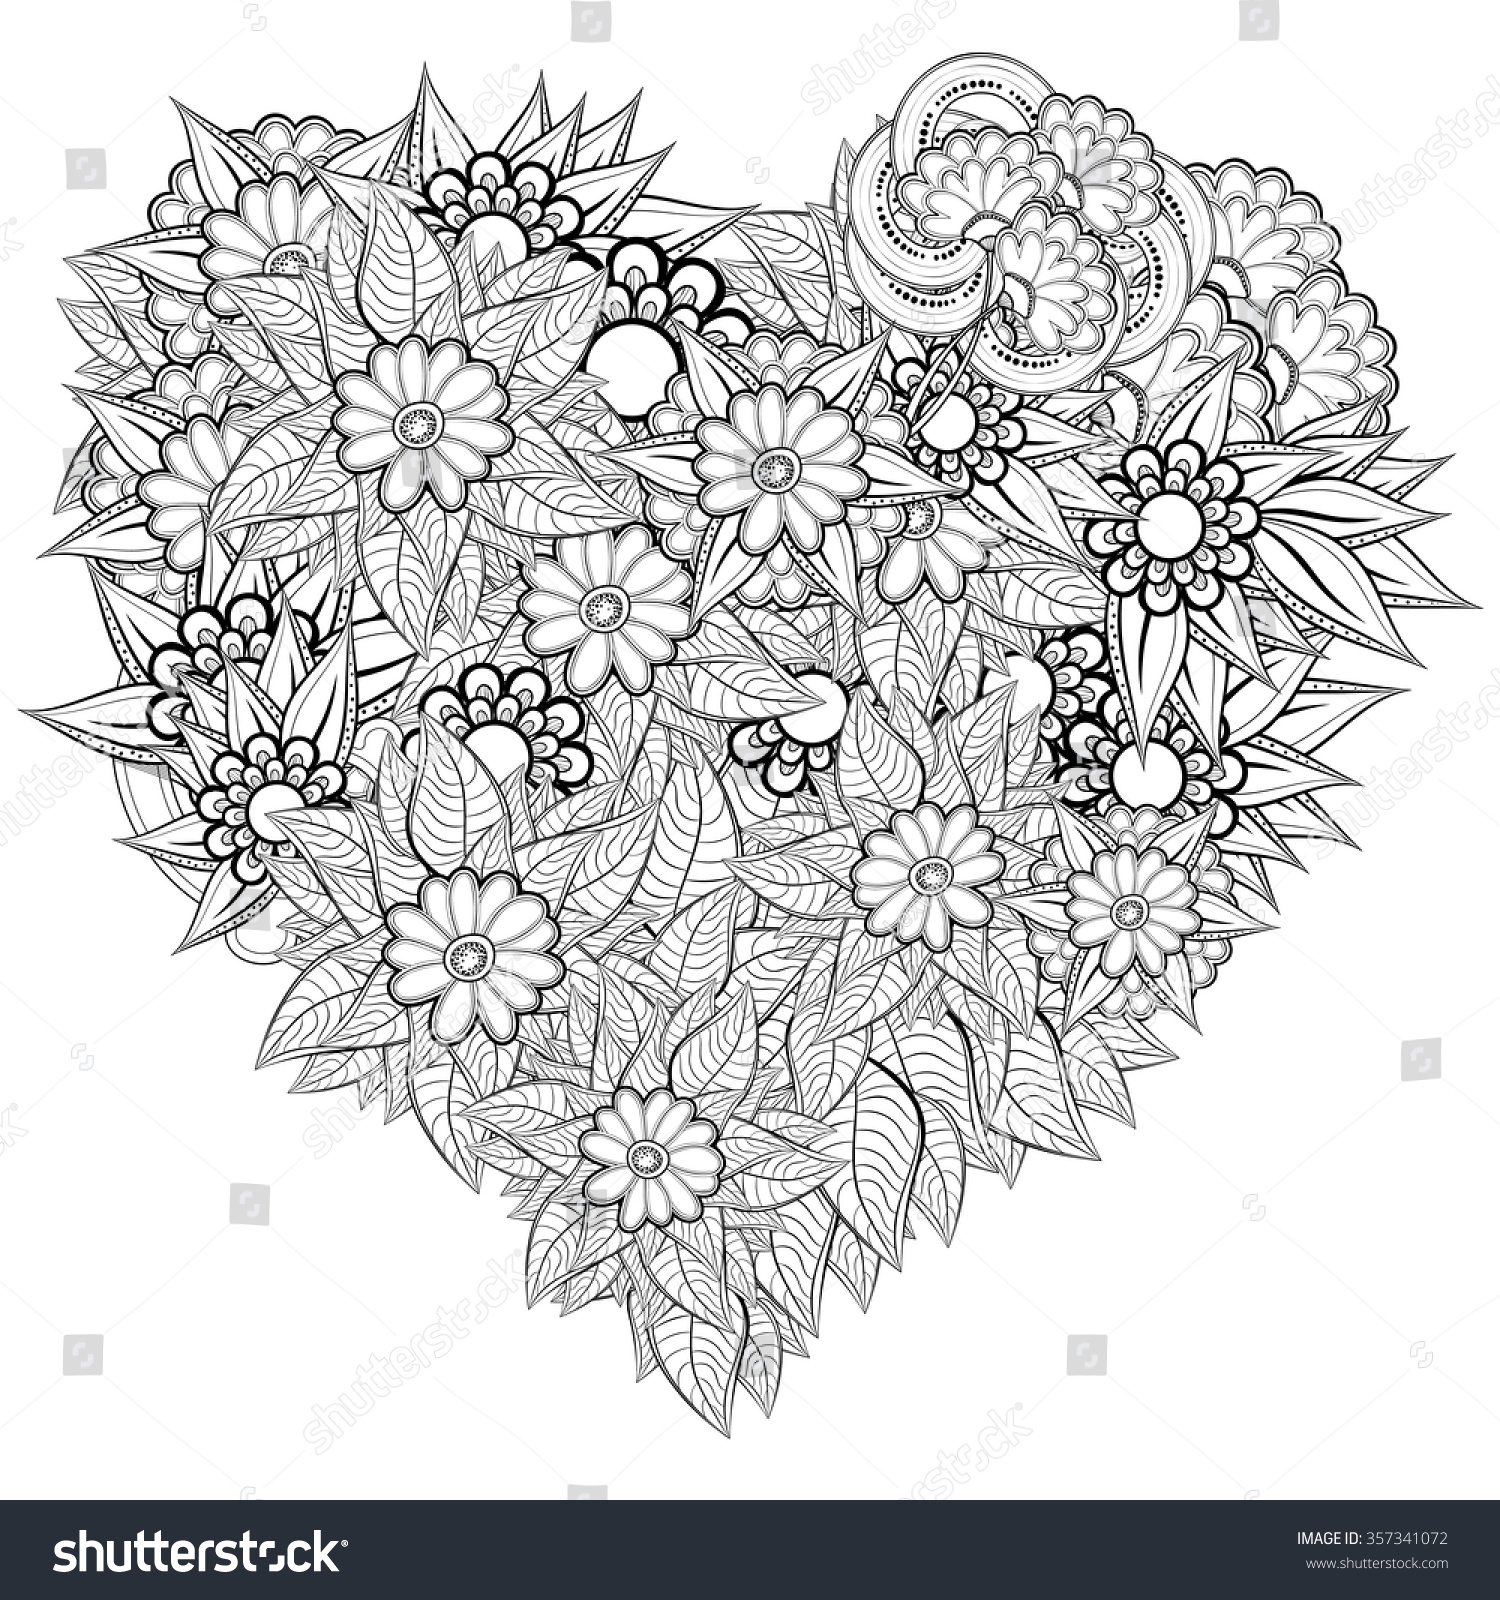 Vector heartshaped pattern coloring book ethnic stock for Zentangle per bambini